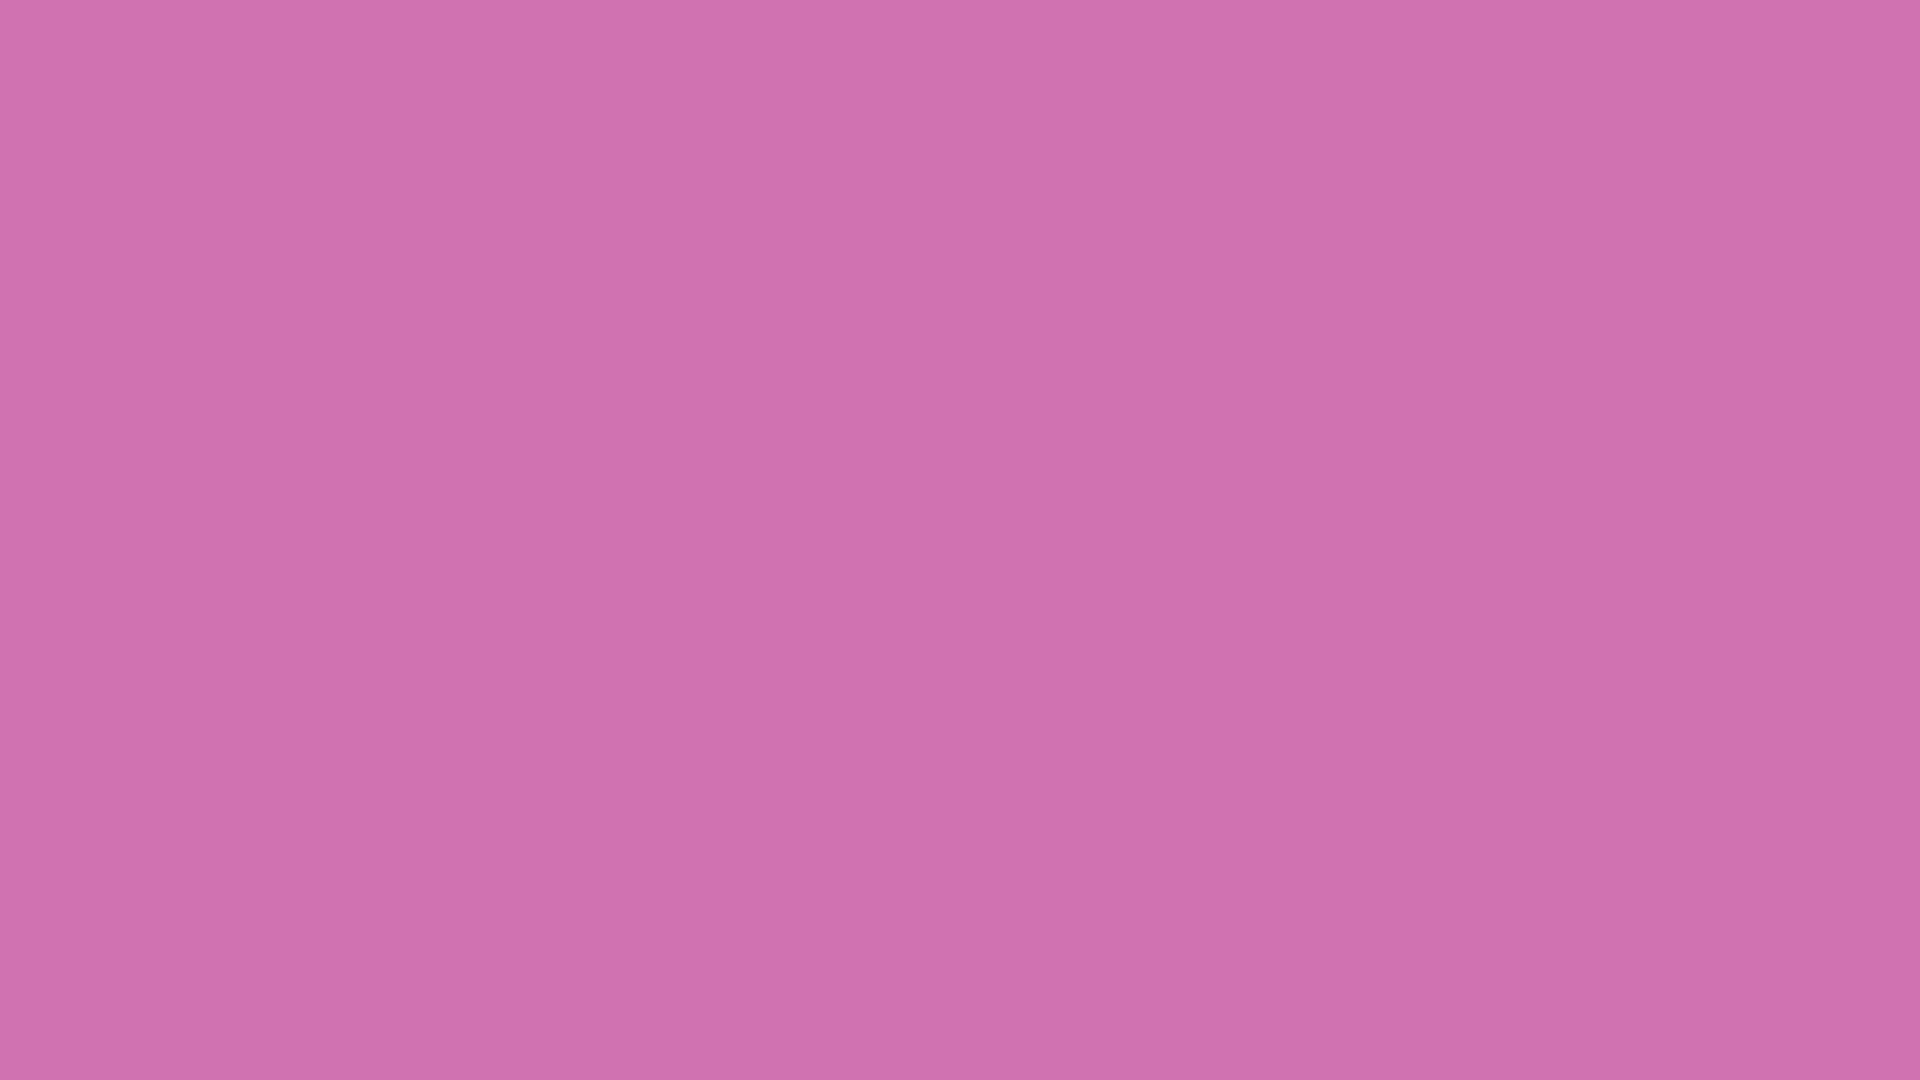 1920x1080 Sky Magenta Solid Color Background